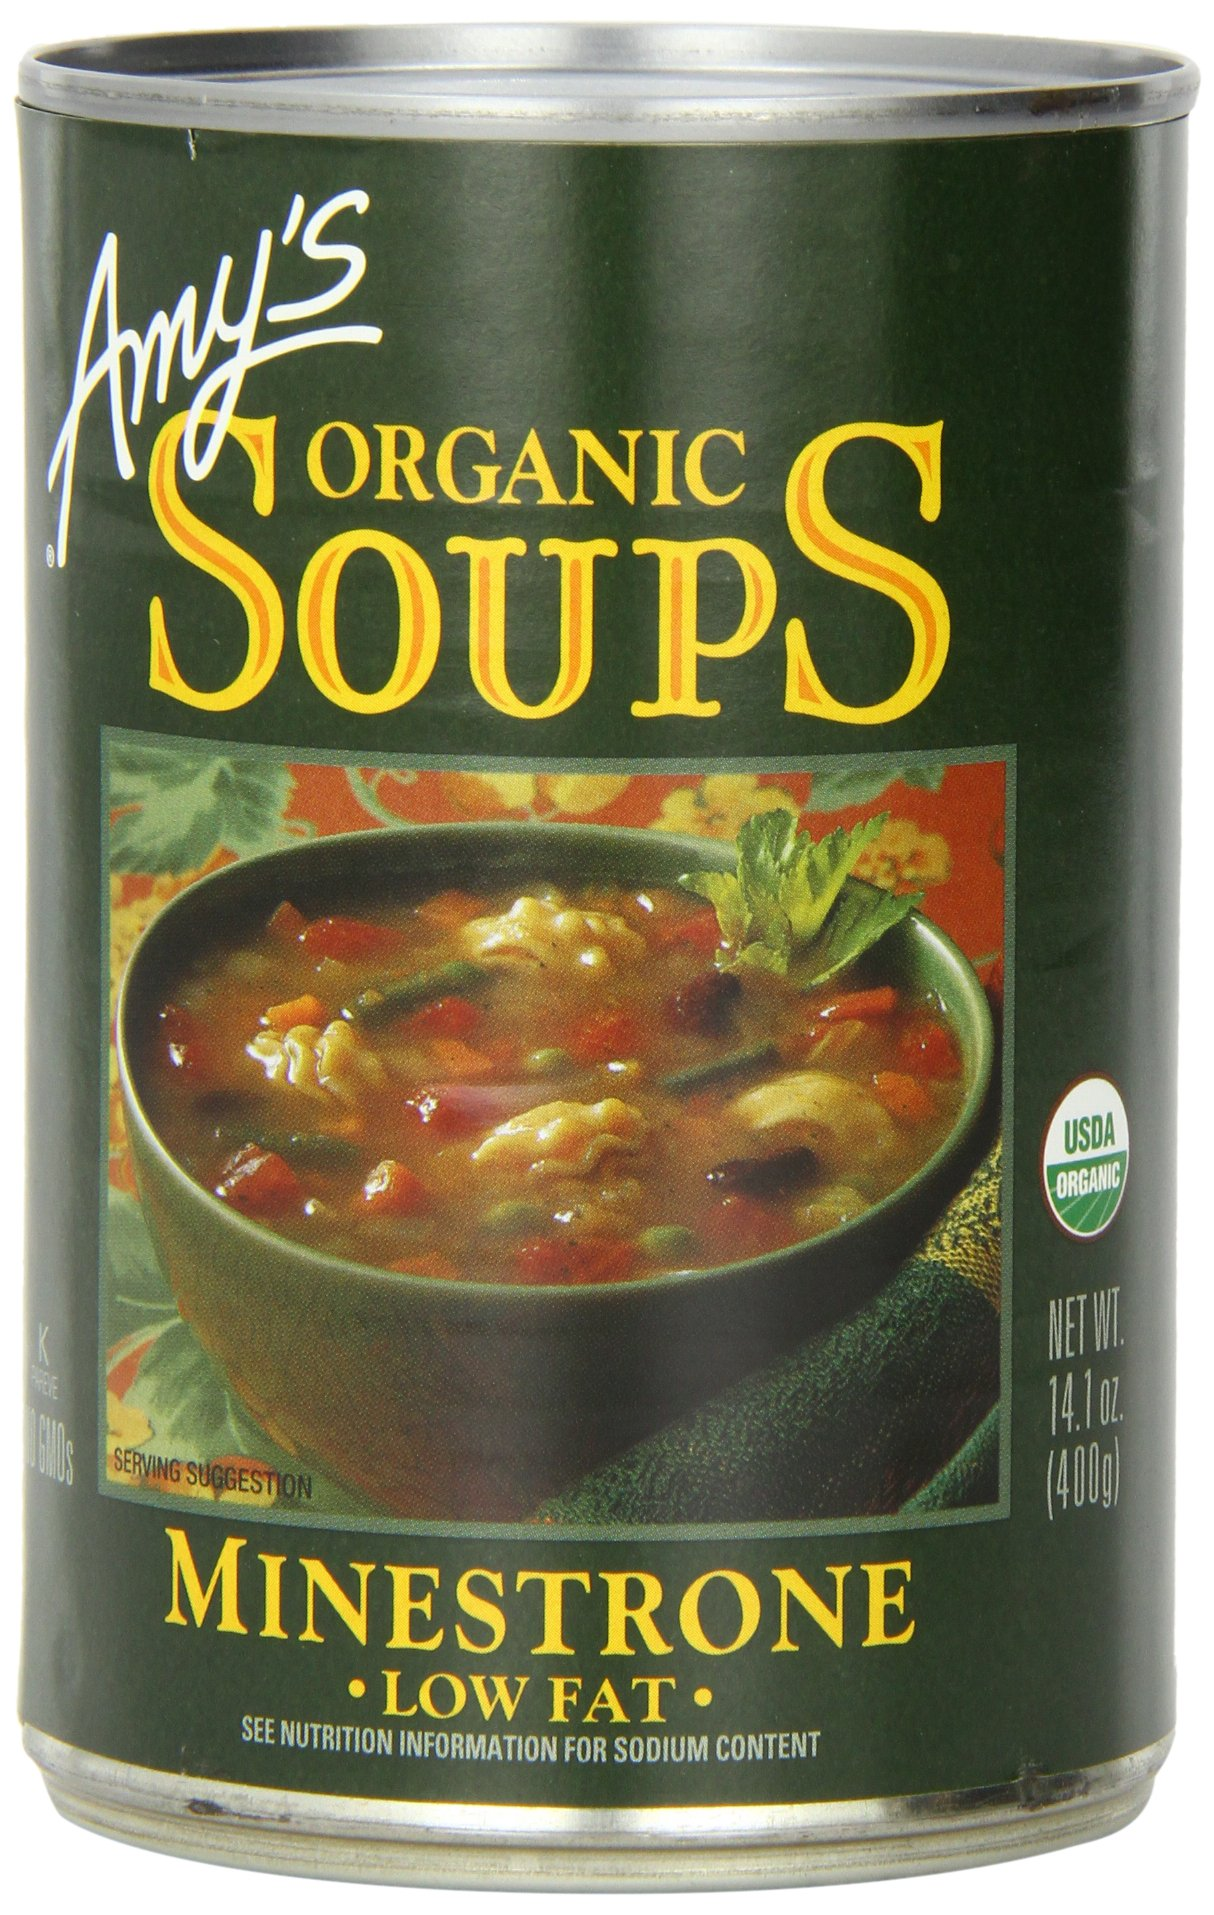 Amy's Organic Soups, Low Fat Minestrone, 14.1 Ounce (Pack of 12)